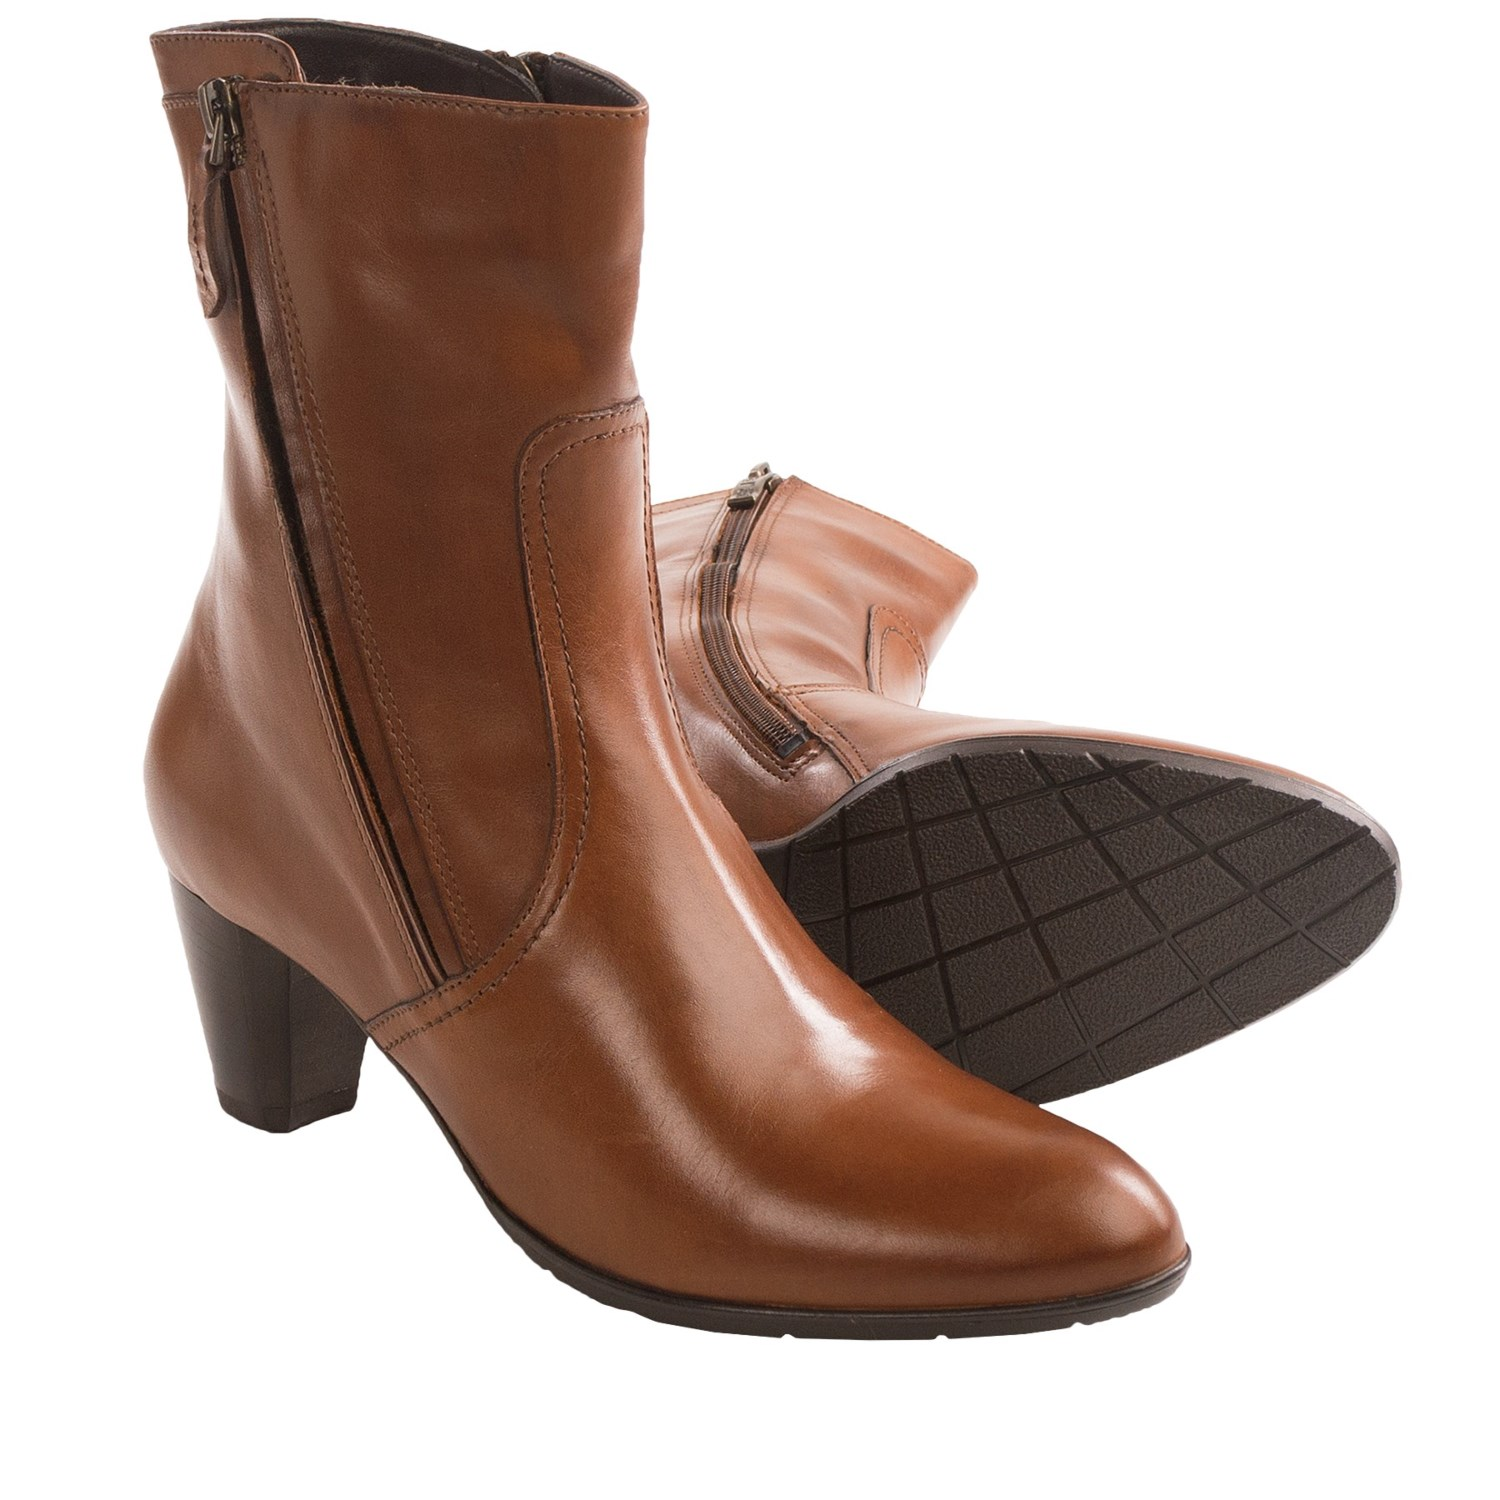 Light Brown Leather Boots Women (for women) in tan leather